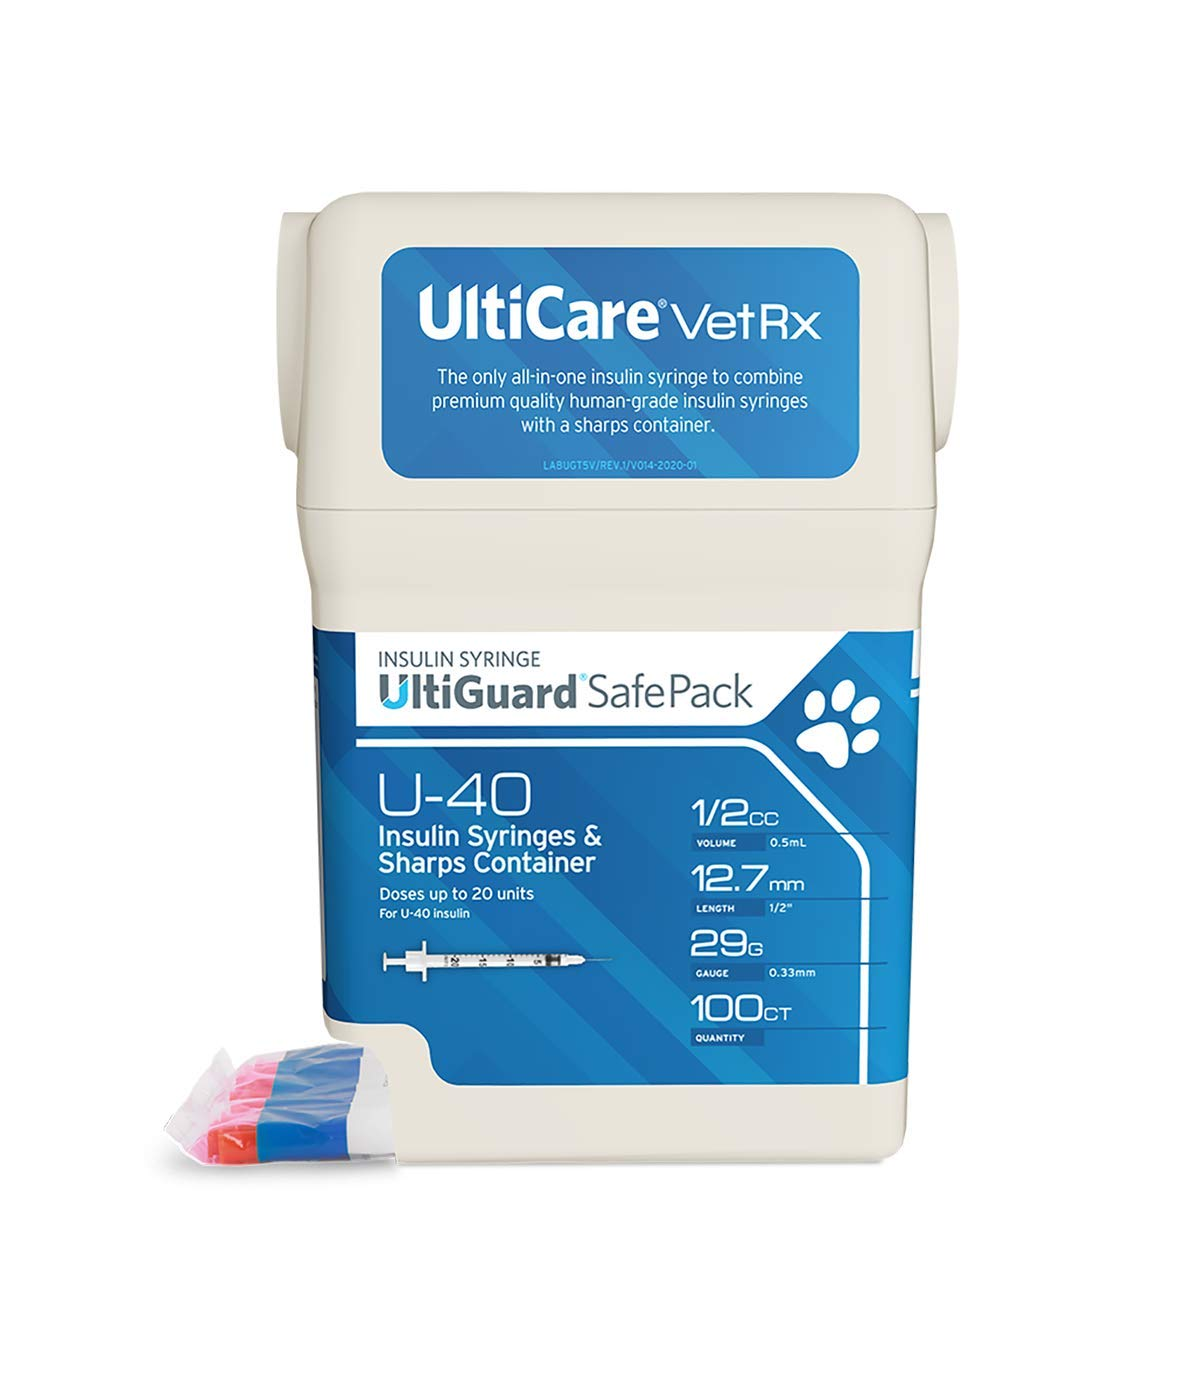 "UltiCare VetRx U-40 UltiGuard Safe Pack Pet Insulin Syringes 1/2cc, 29G x 1/2"", 100 ct"